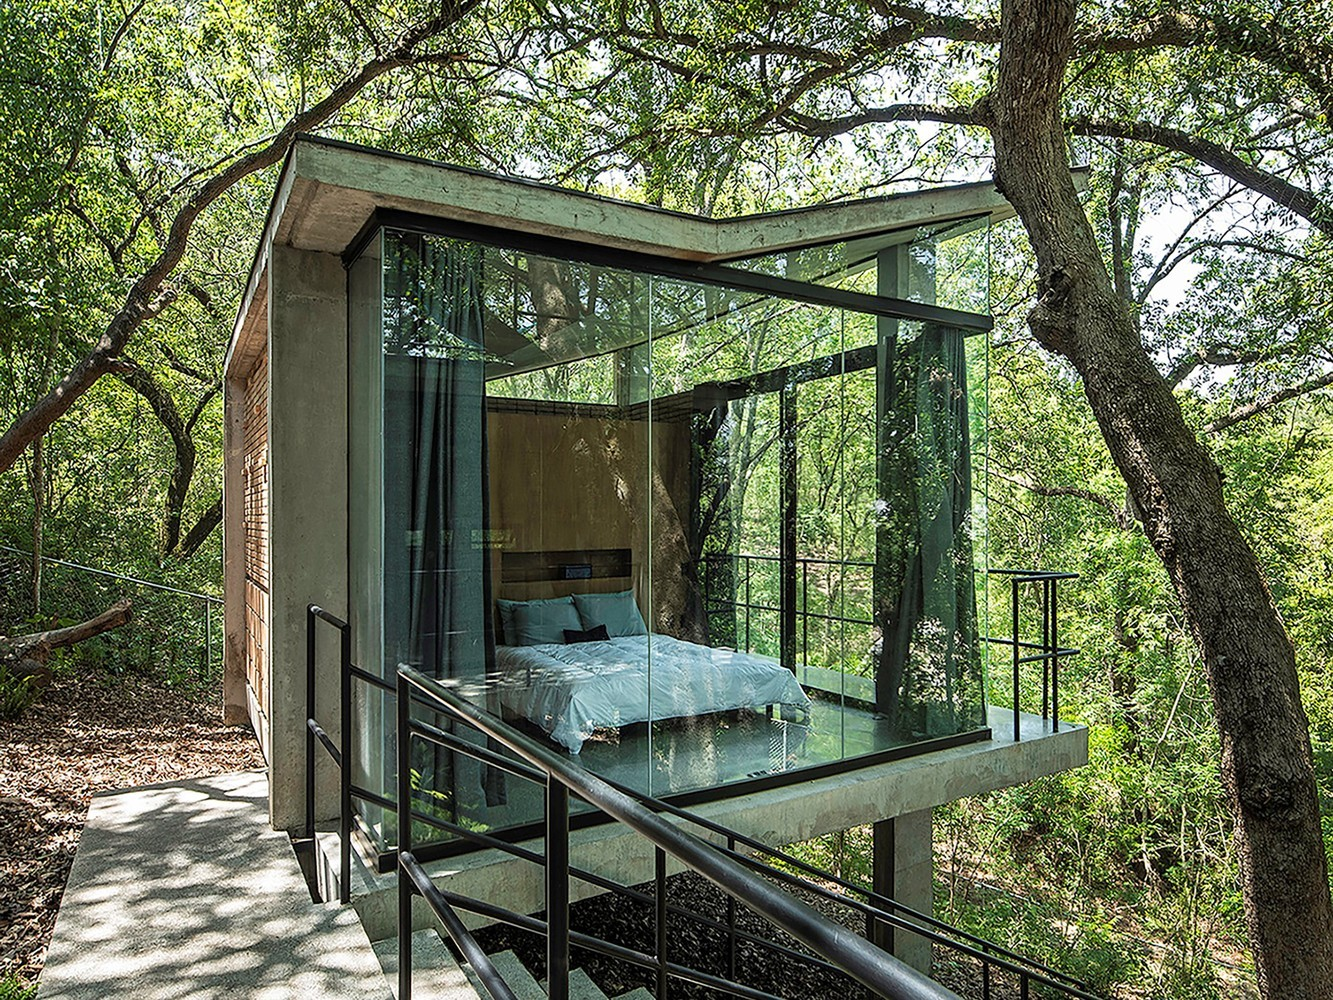 Gallery of Best Houses of 2019 - 10